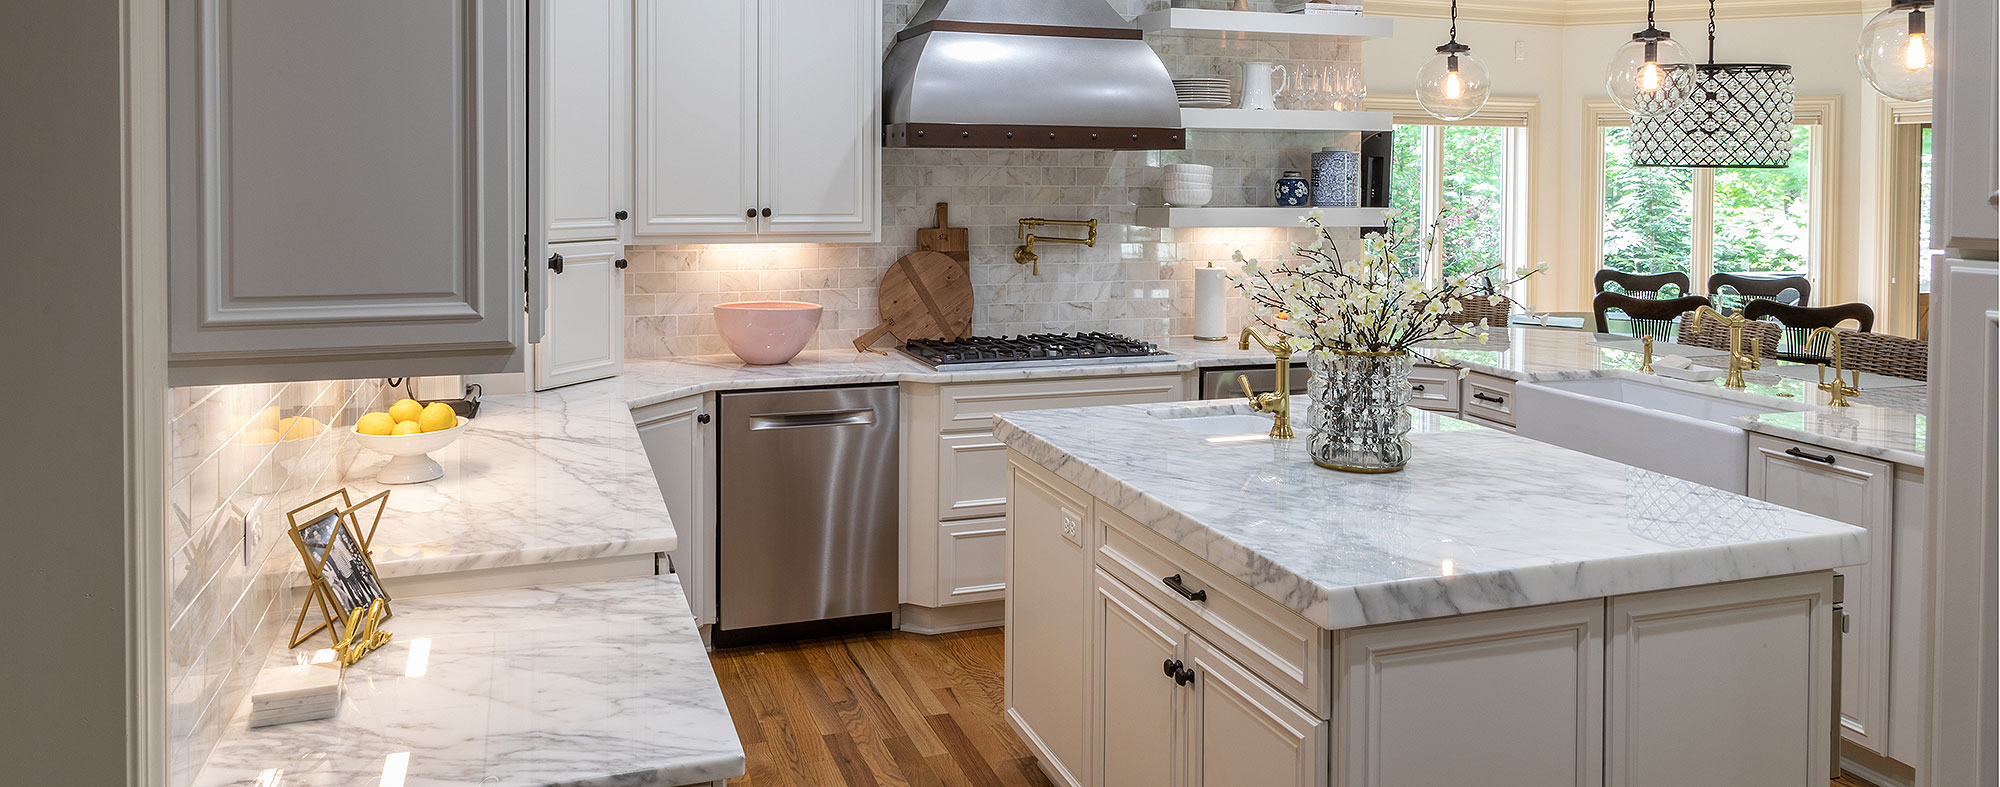 Marble Countertops and Kitchen Cabinets